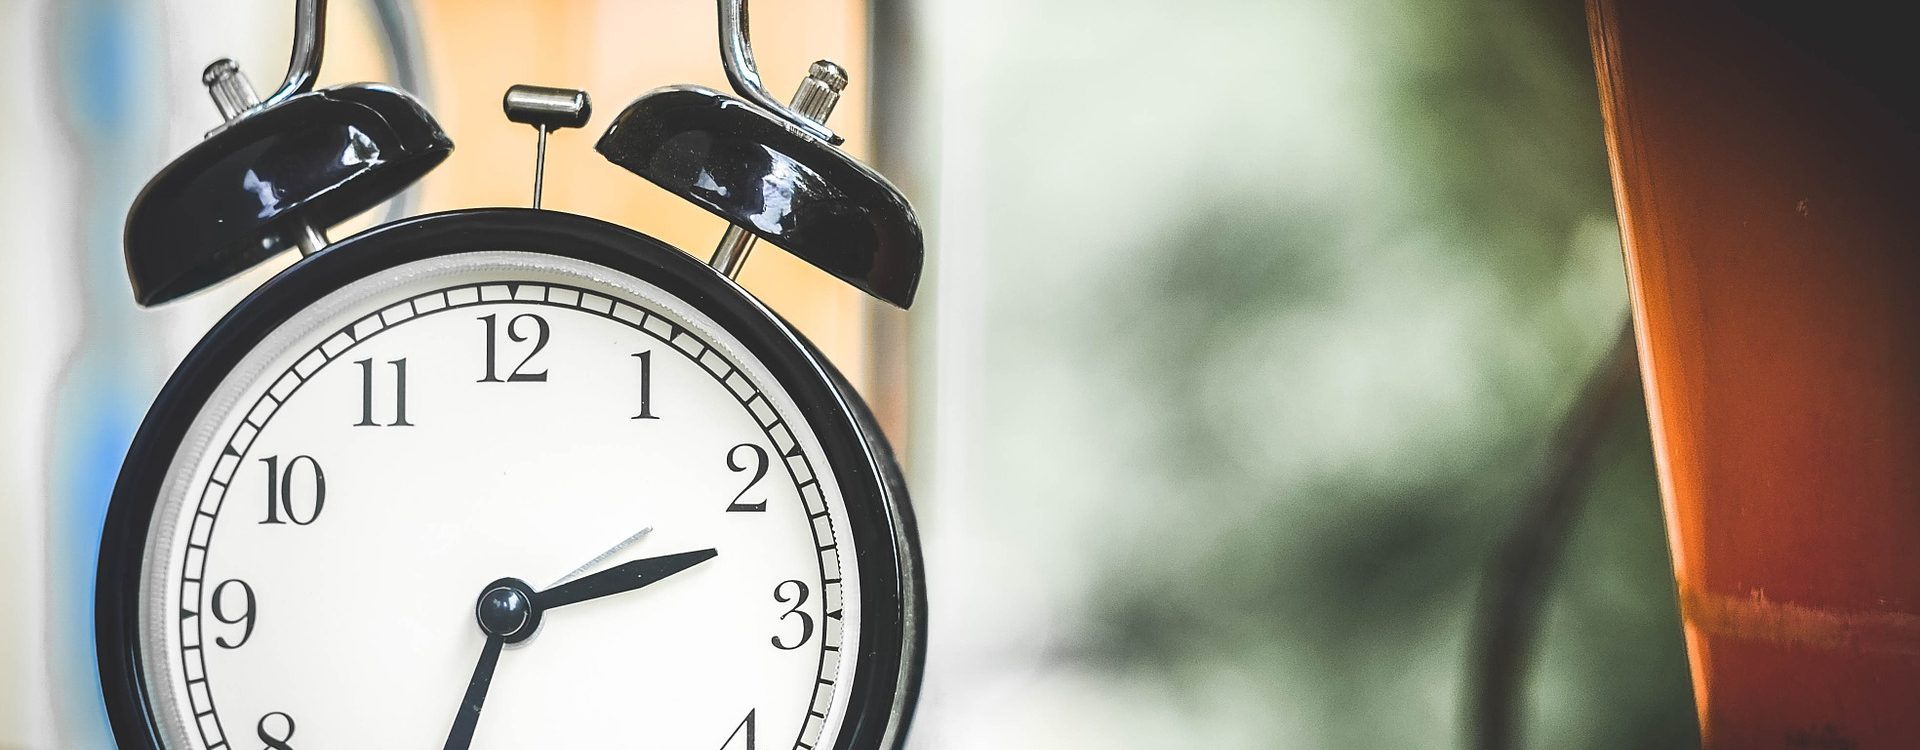 Frequently Asked Questions and Answers about SAP SuccessFactors Time Tracking featured image